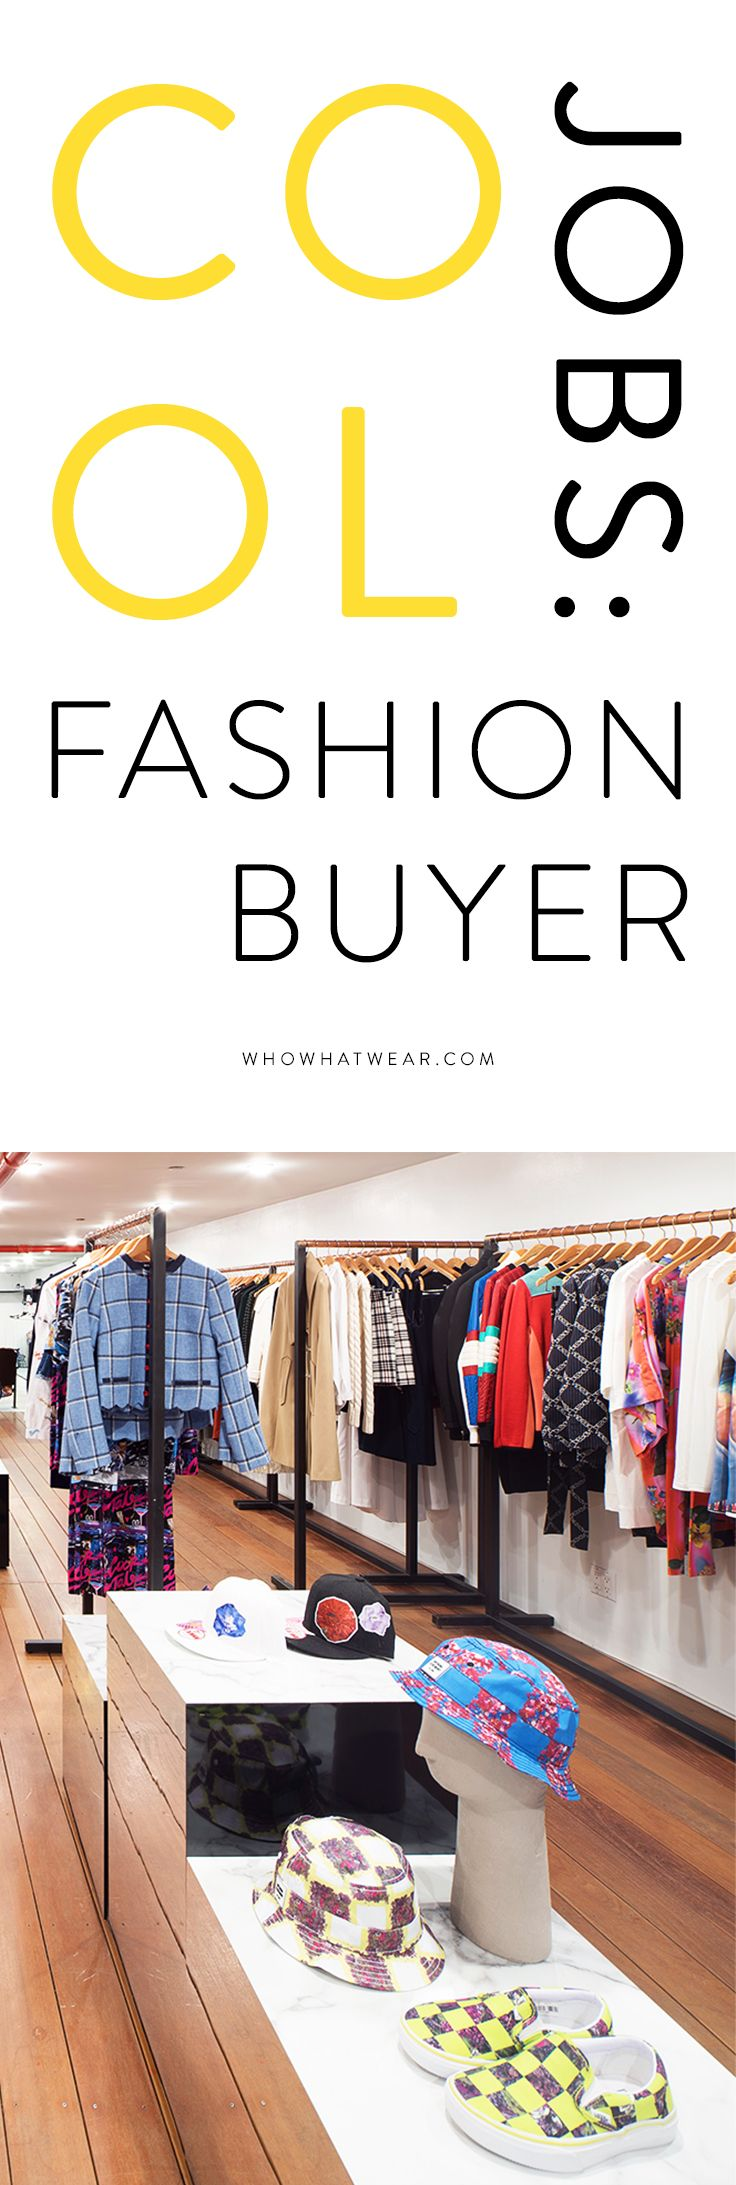 What its like to be a fashion buyer in the retail industry